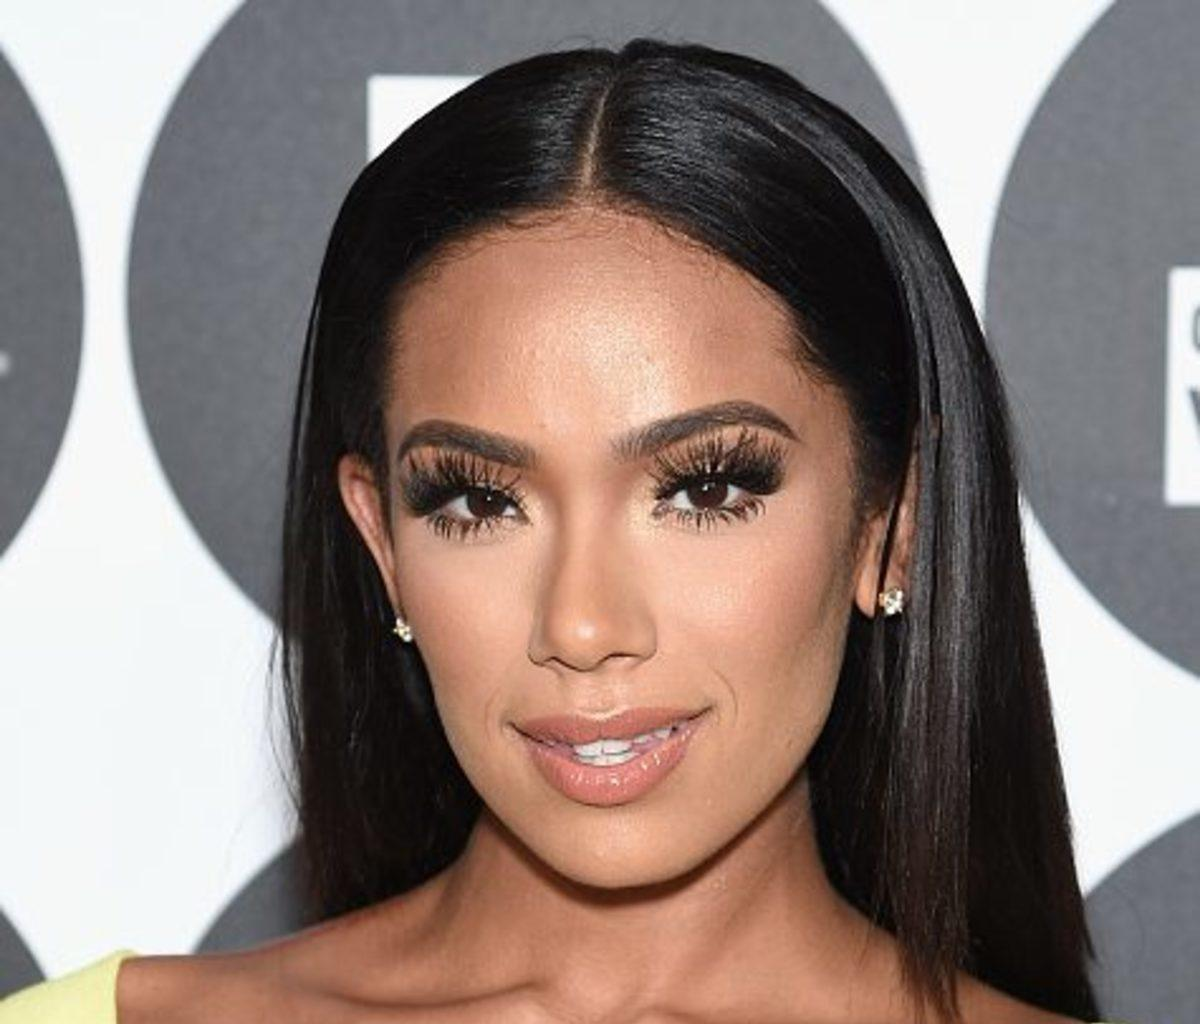 Erica Mena Reveals One Of Her Secrets For A Flawless Skin